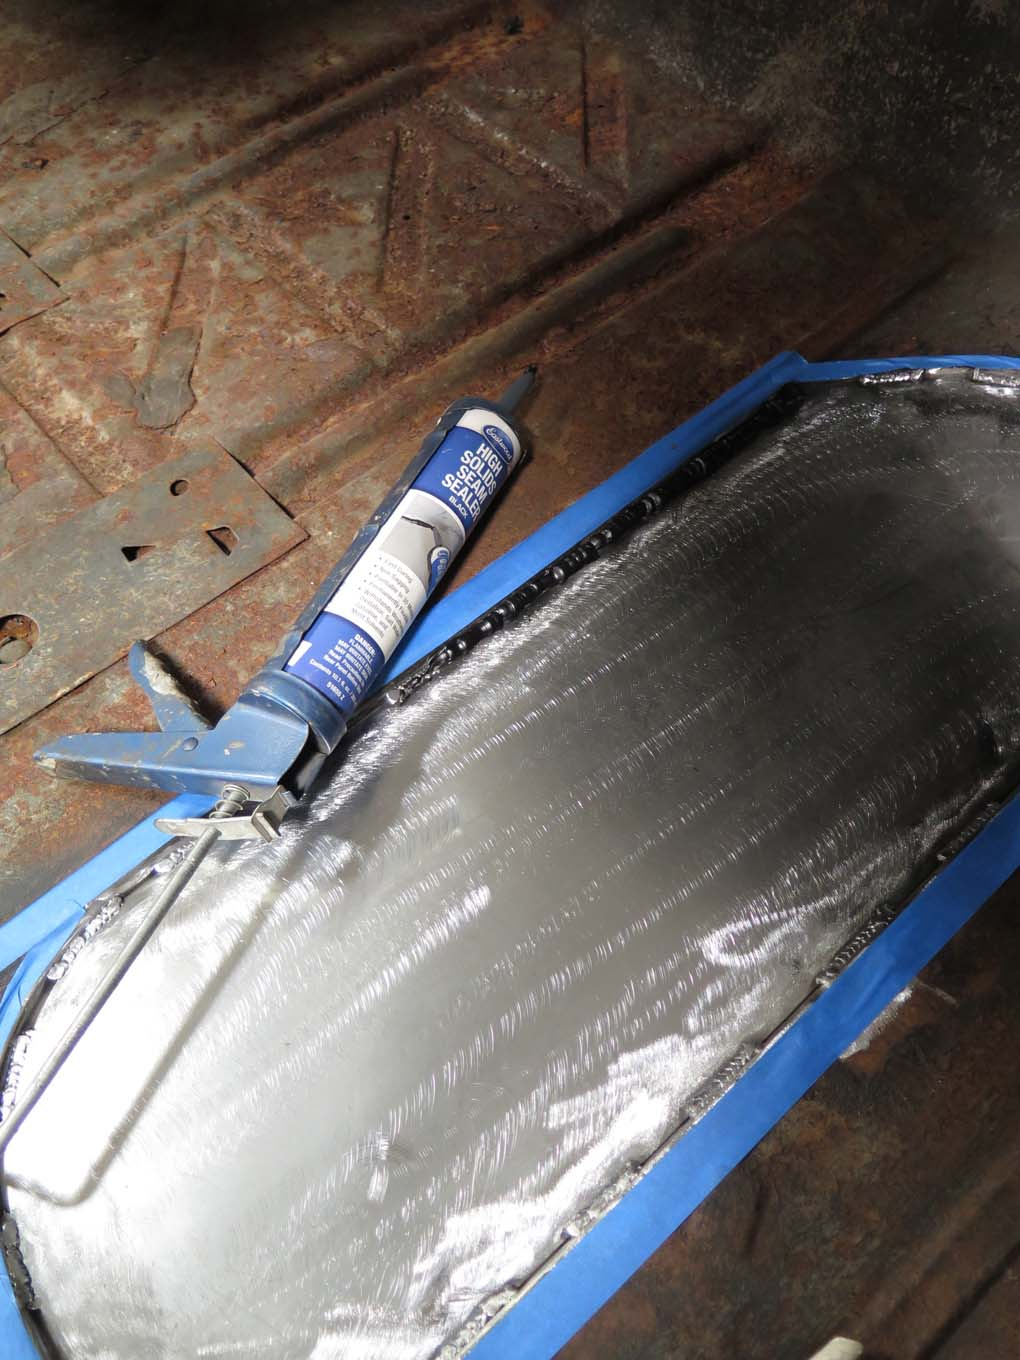 Eastwood high solid seam sealer was used to seal the perimeter. Note the short sections of weld rather than just tacks. The sealer will prevent moisture and rust in the joint.